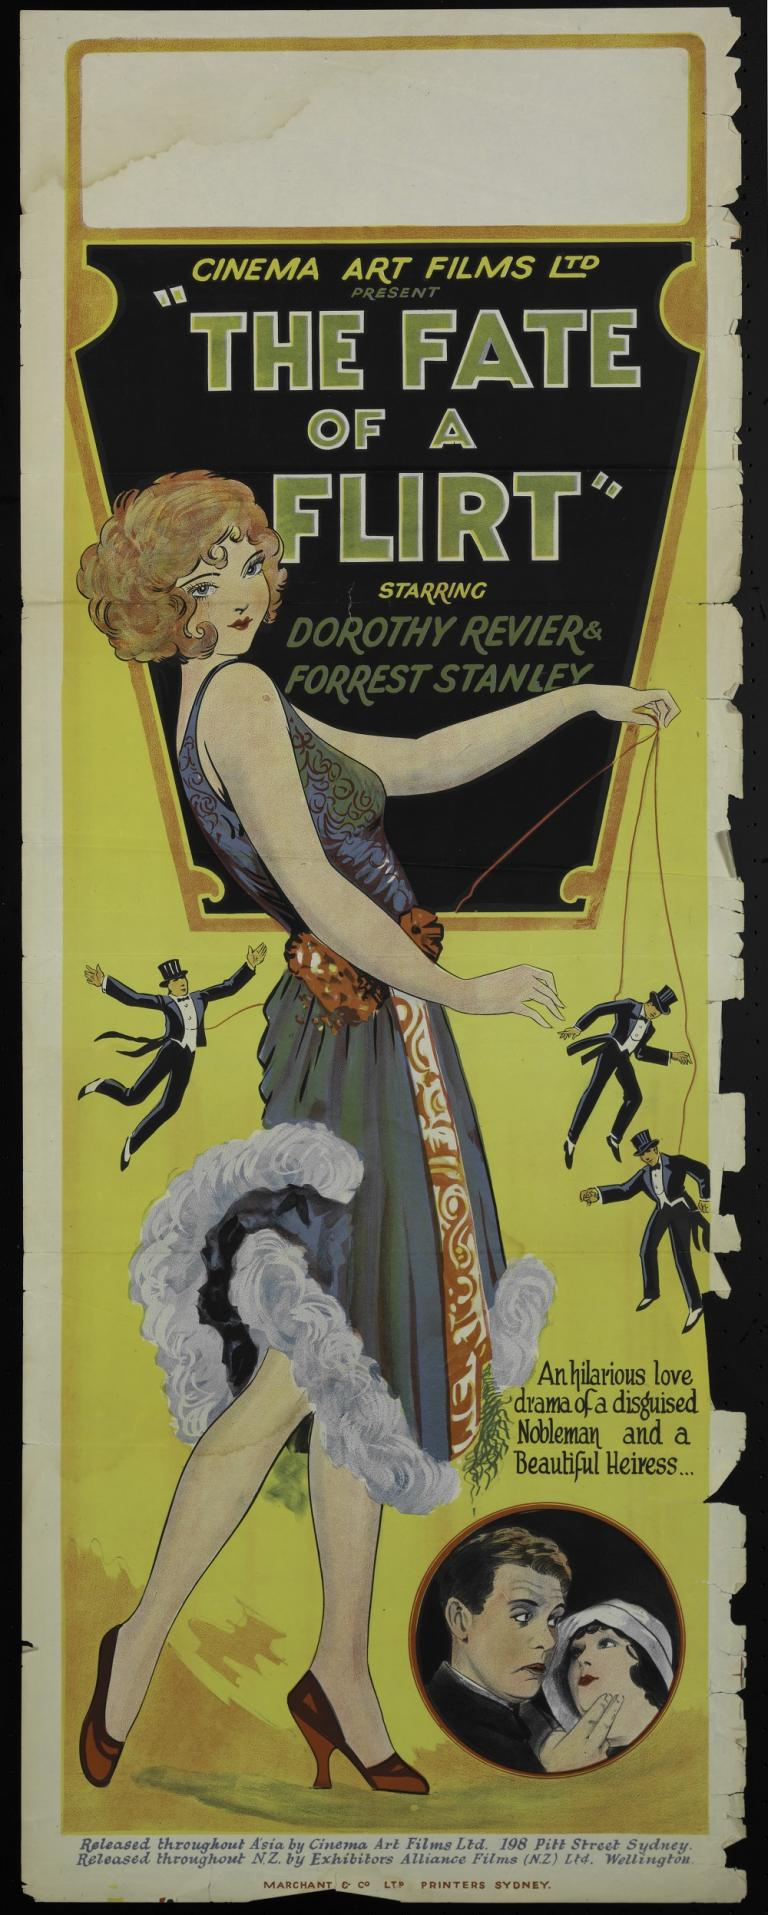 The poster features Dorothy Revier in an intricate flapper-style dress controlling three miniature gentlemen in tuxedos and top hats like marionettes, emphasising the control she yields over them.